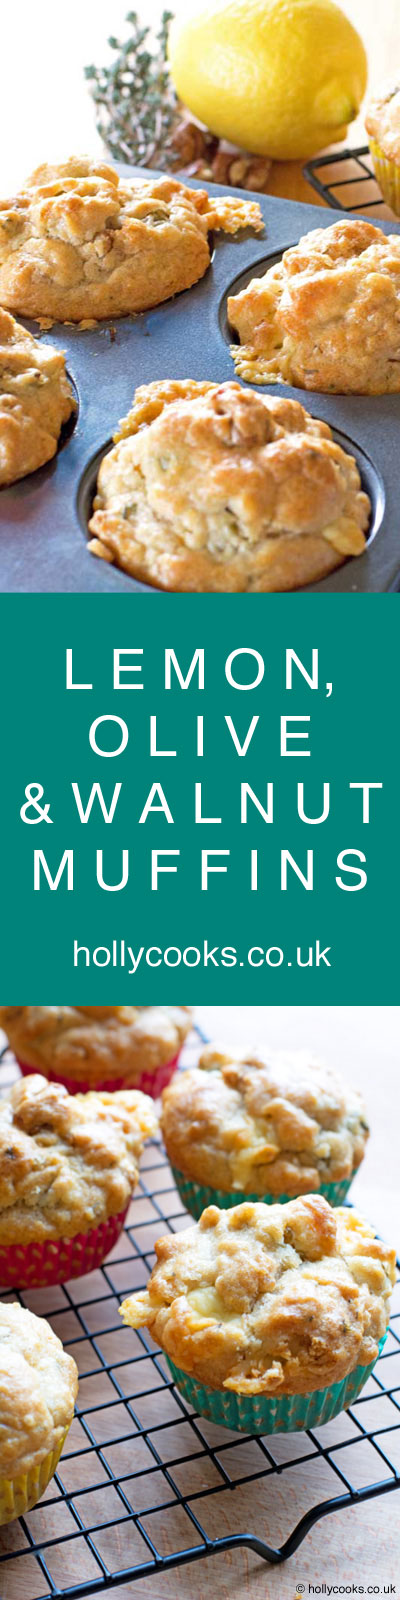 Lemon, olive and walnut muffins